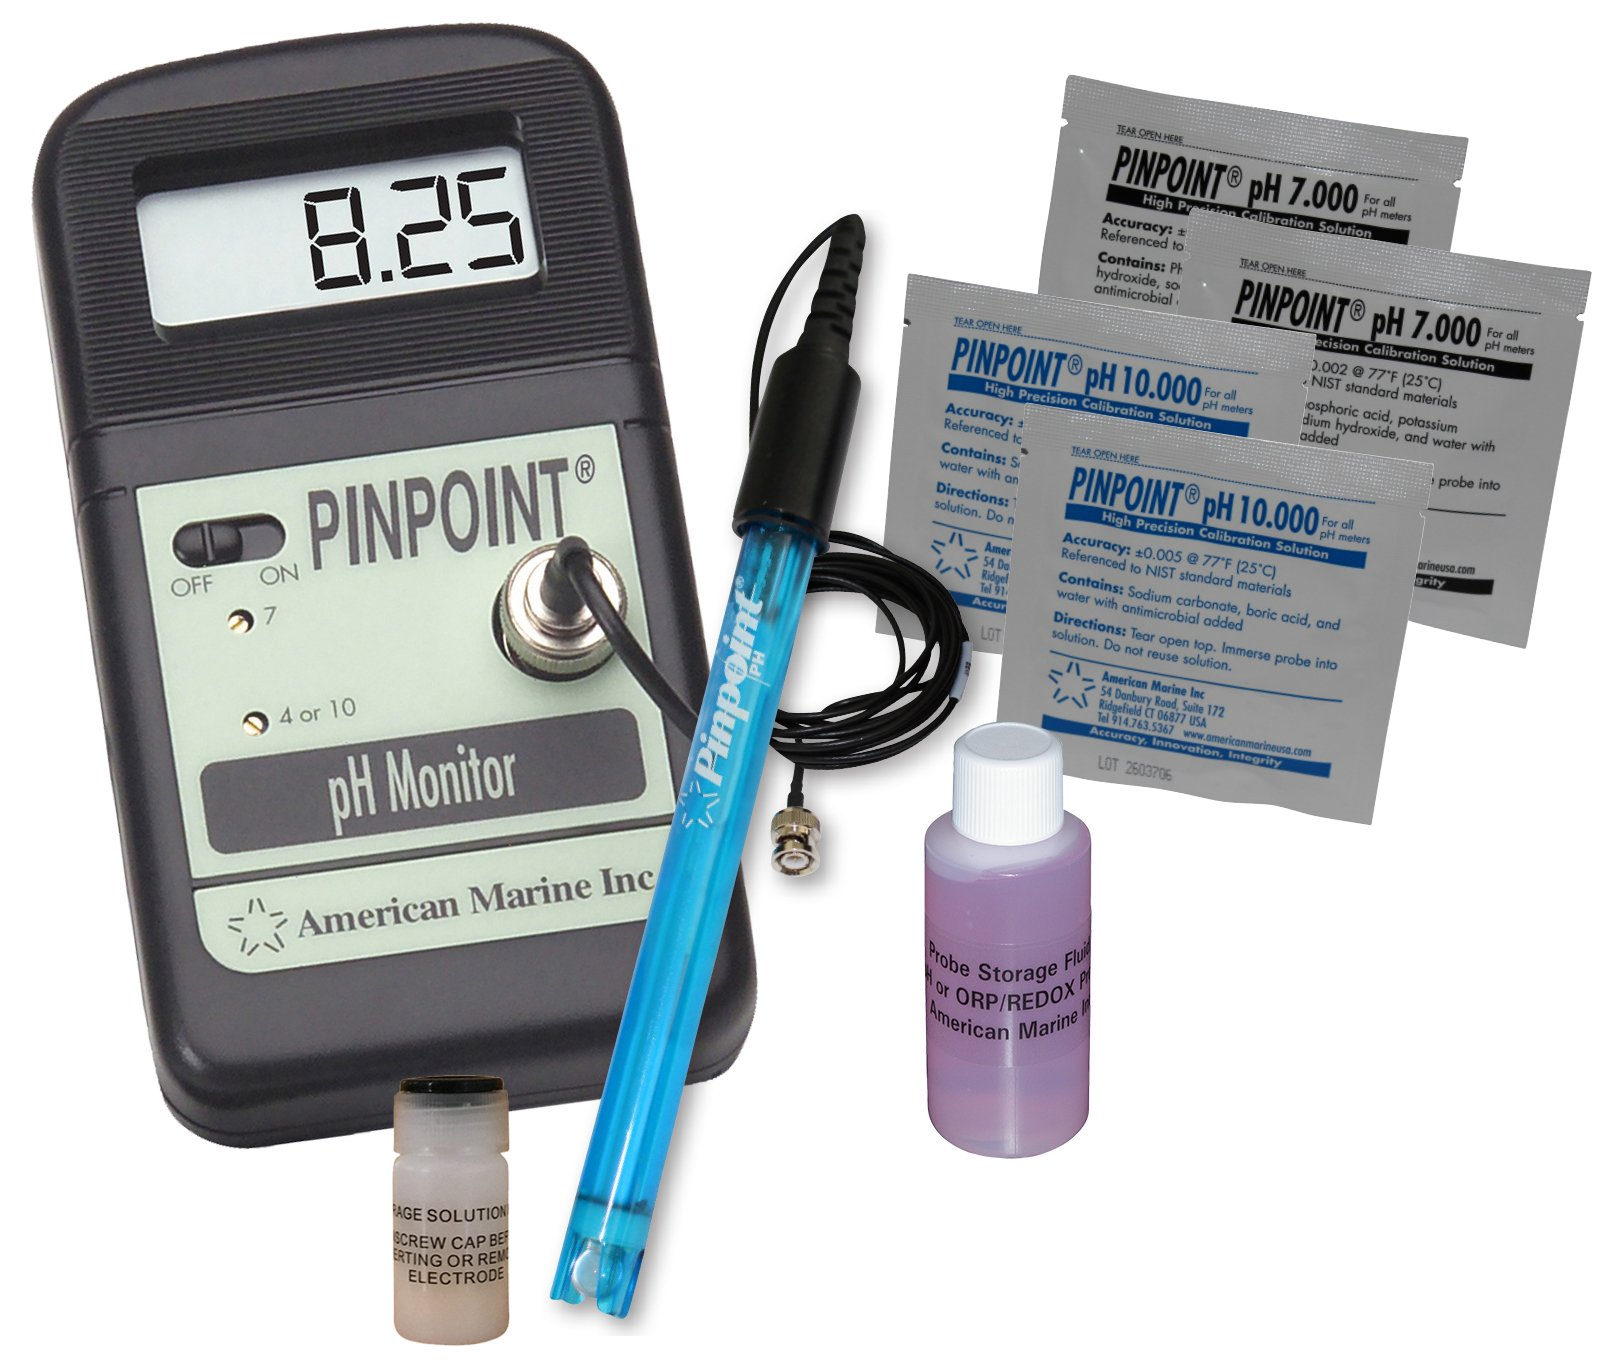 PINPOINT pH METER KIT Lab Grade Portable Bench Meter Kit for Easy & Precise Digital pH Measurement by PINPOINT by American Marine Inc.